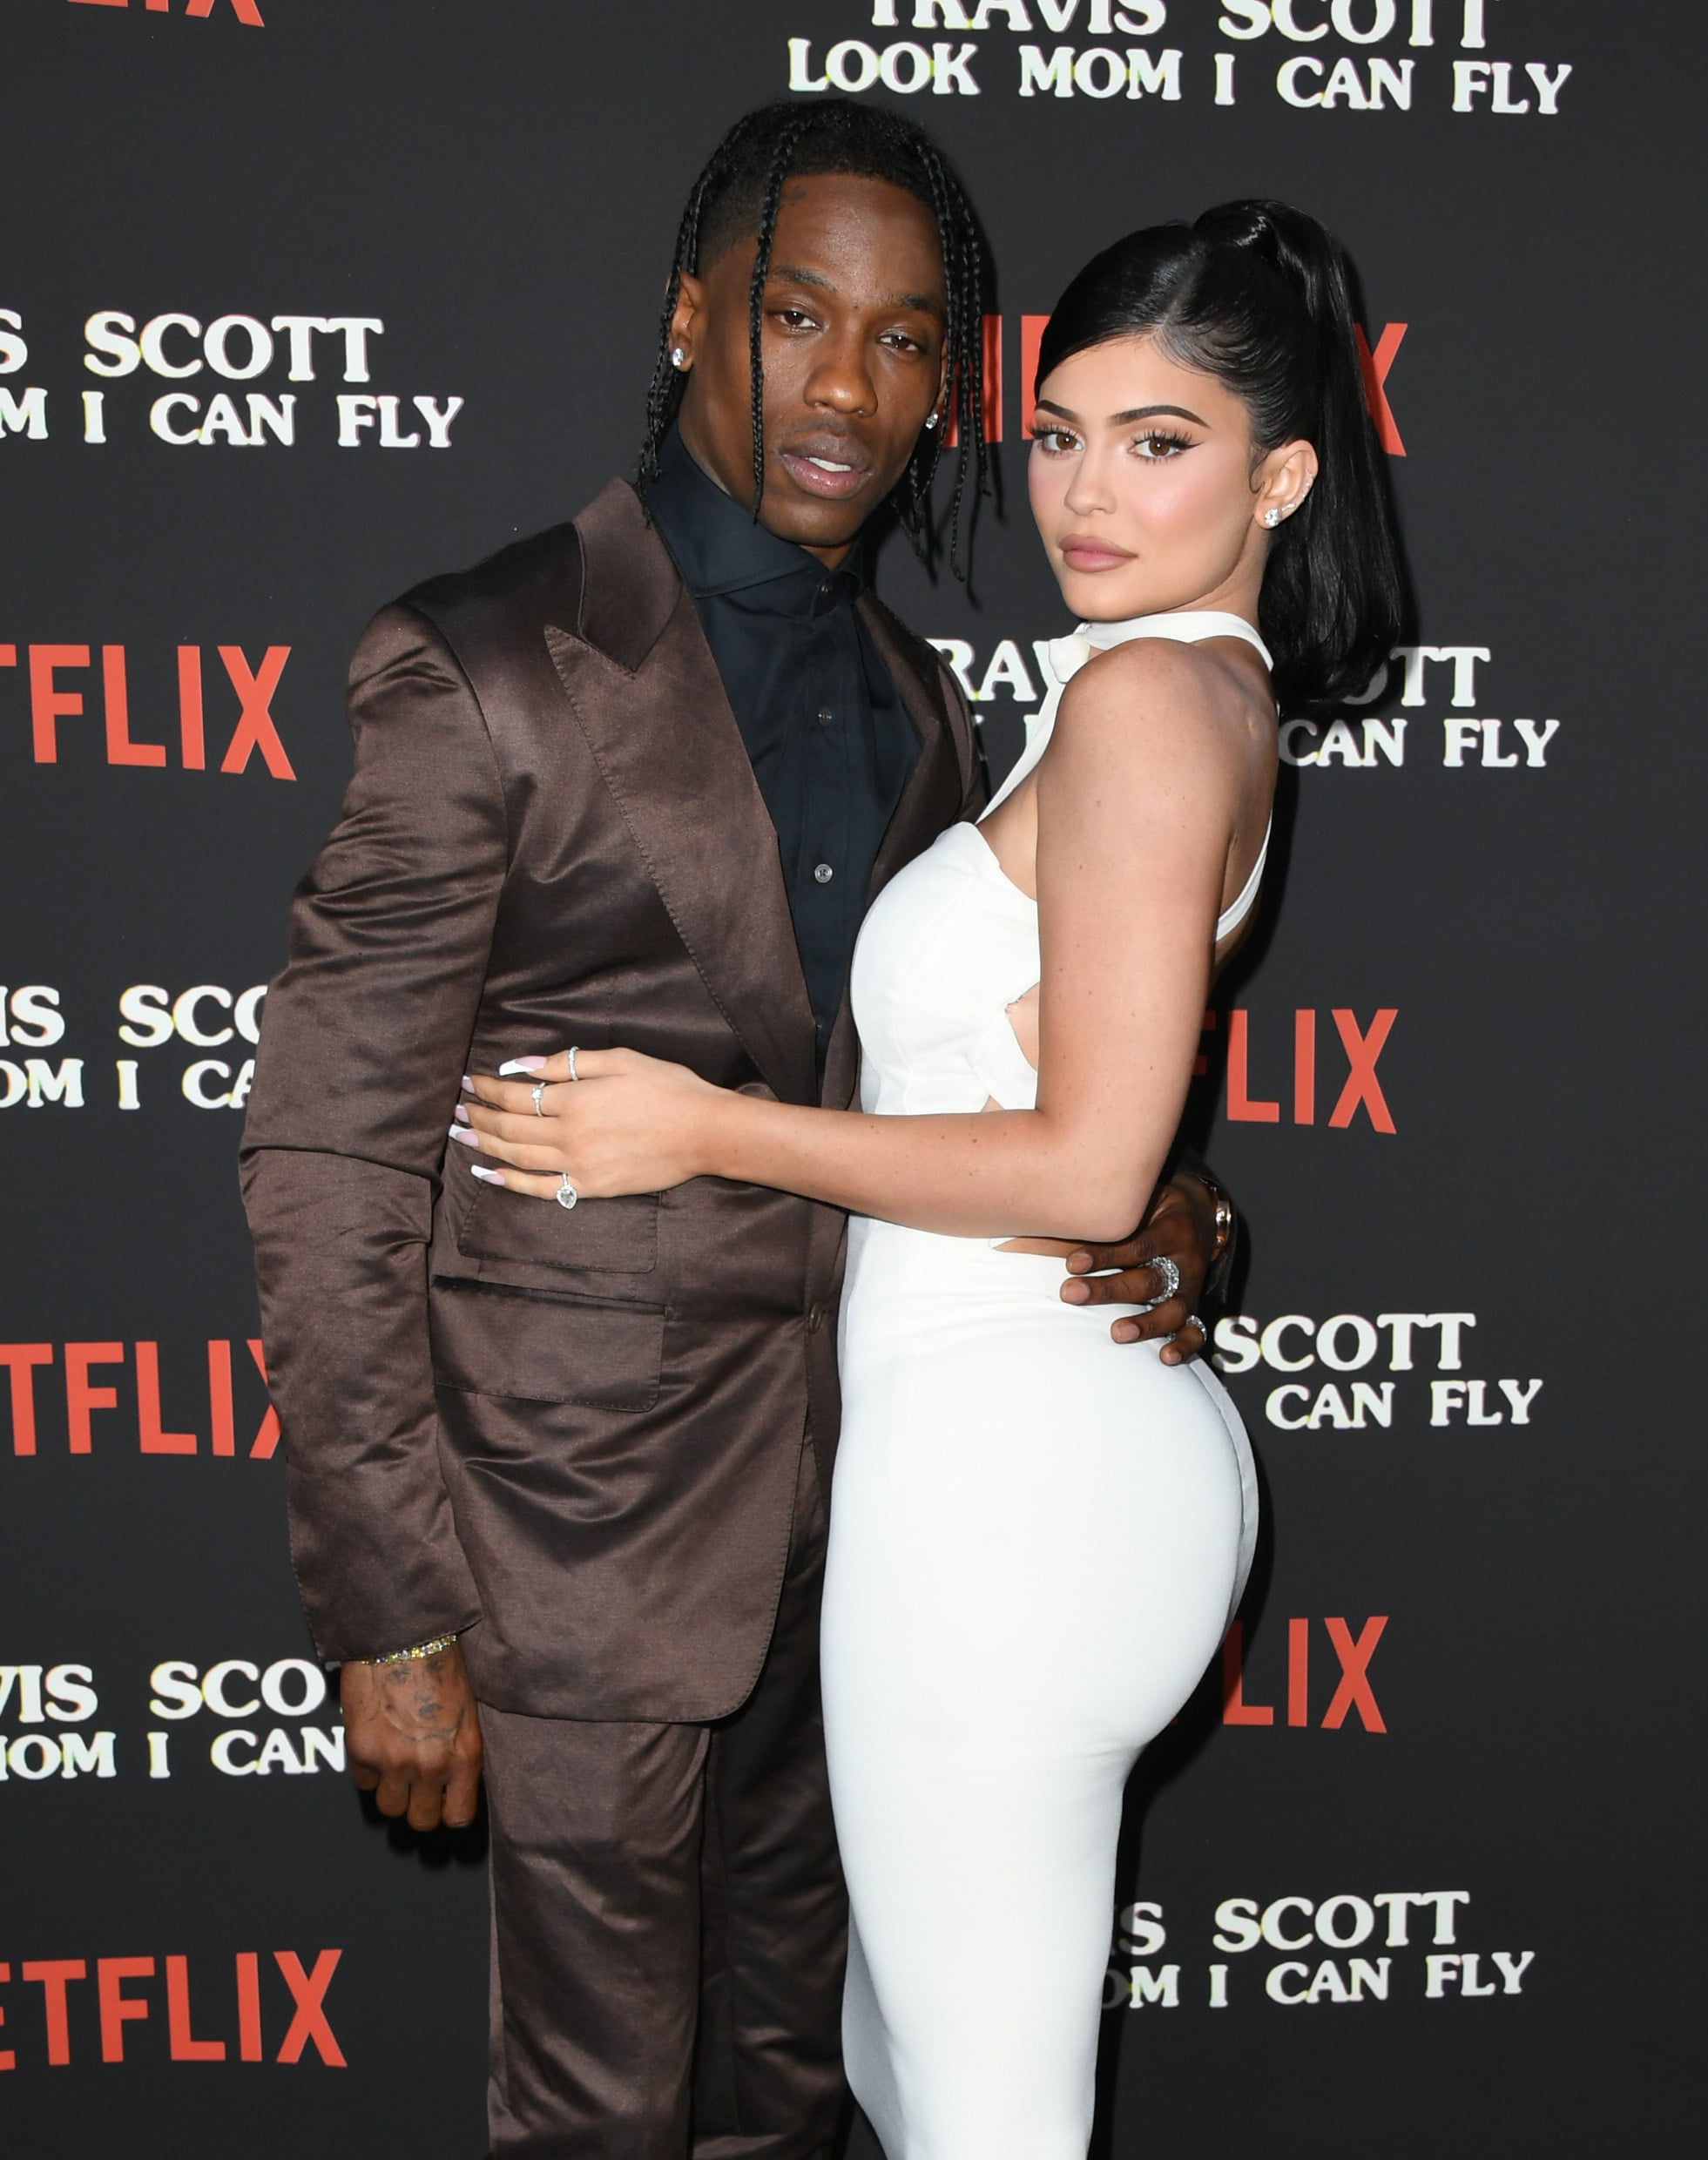 SANTA MONICA, CALIFORNIA - AUGUST 27:  Travis Scott and Kylie Jenner attend the Premiere Of Netflix's